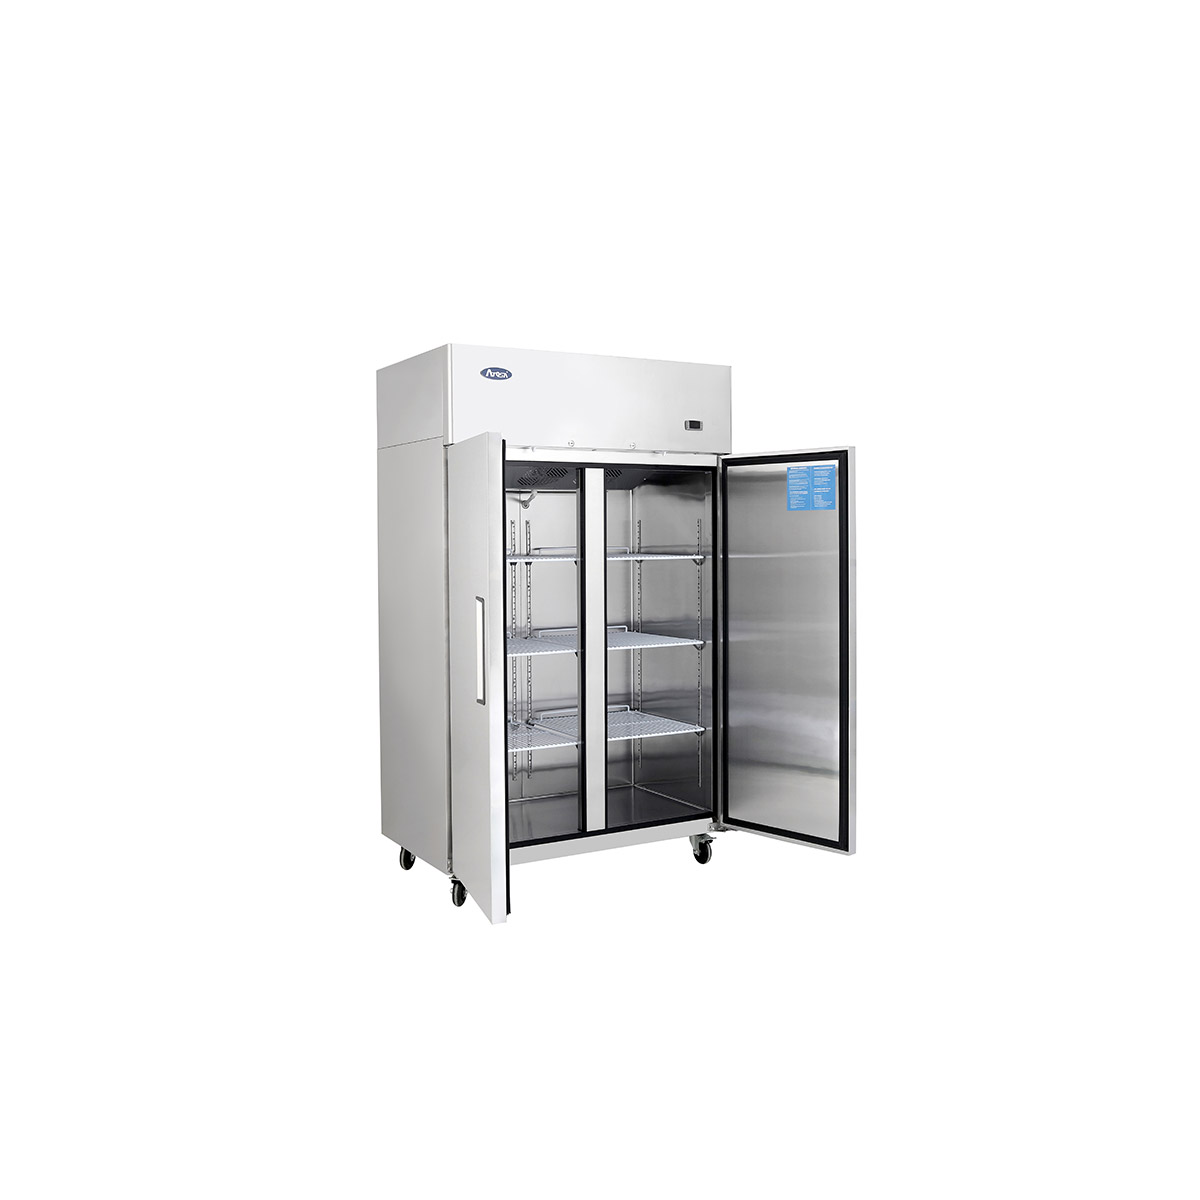 Atosa YBF9219GR Slimline Upright Double Door Freezer 900ltrs